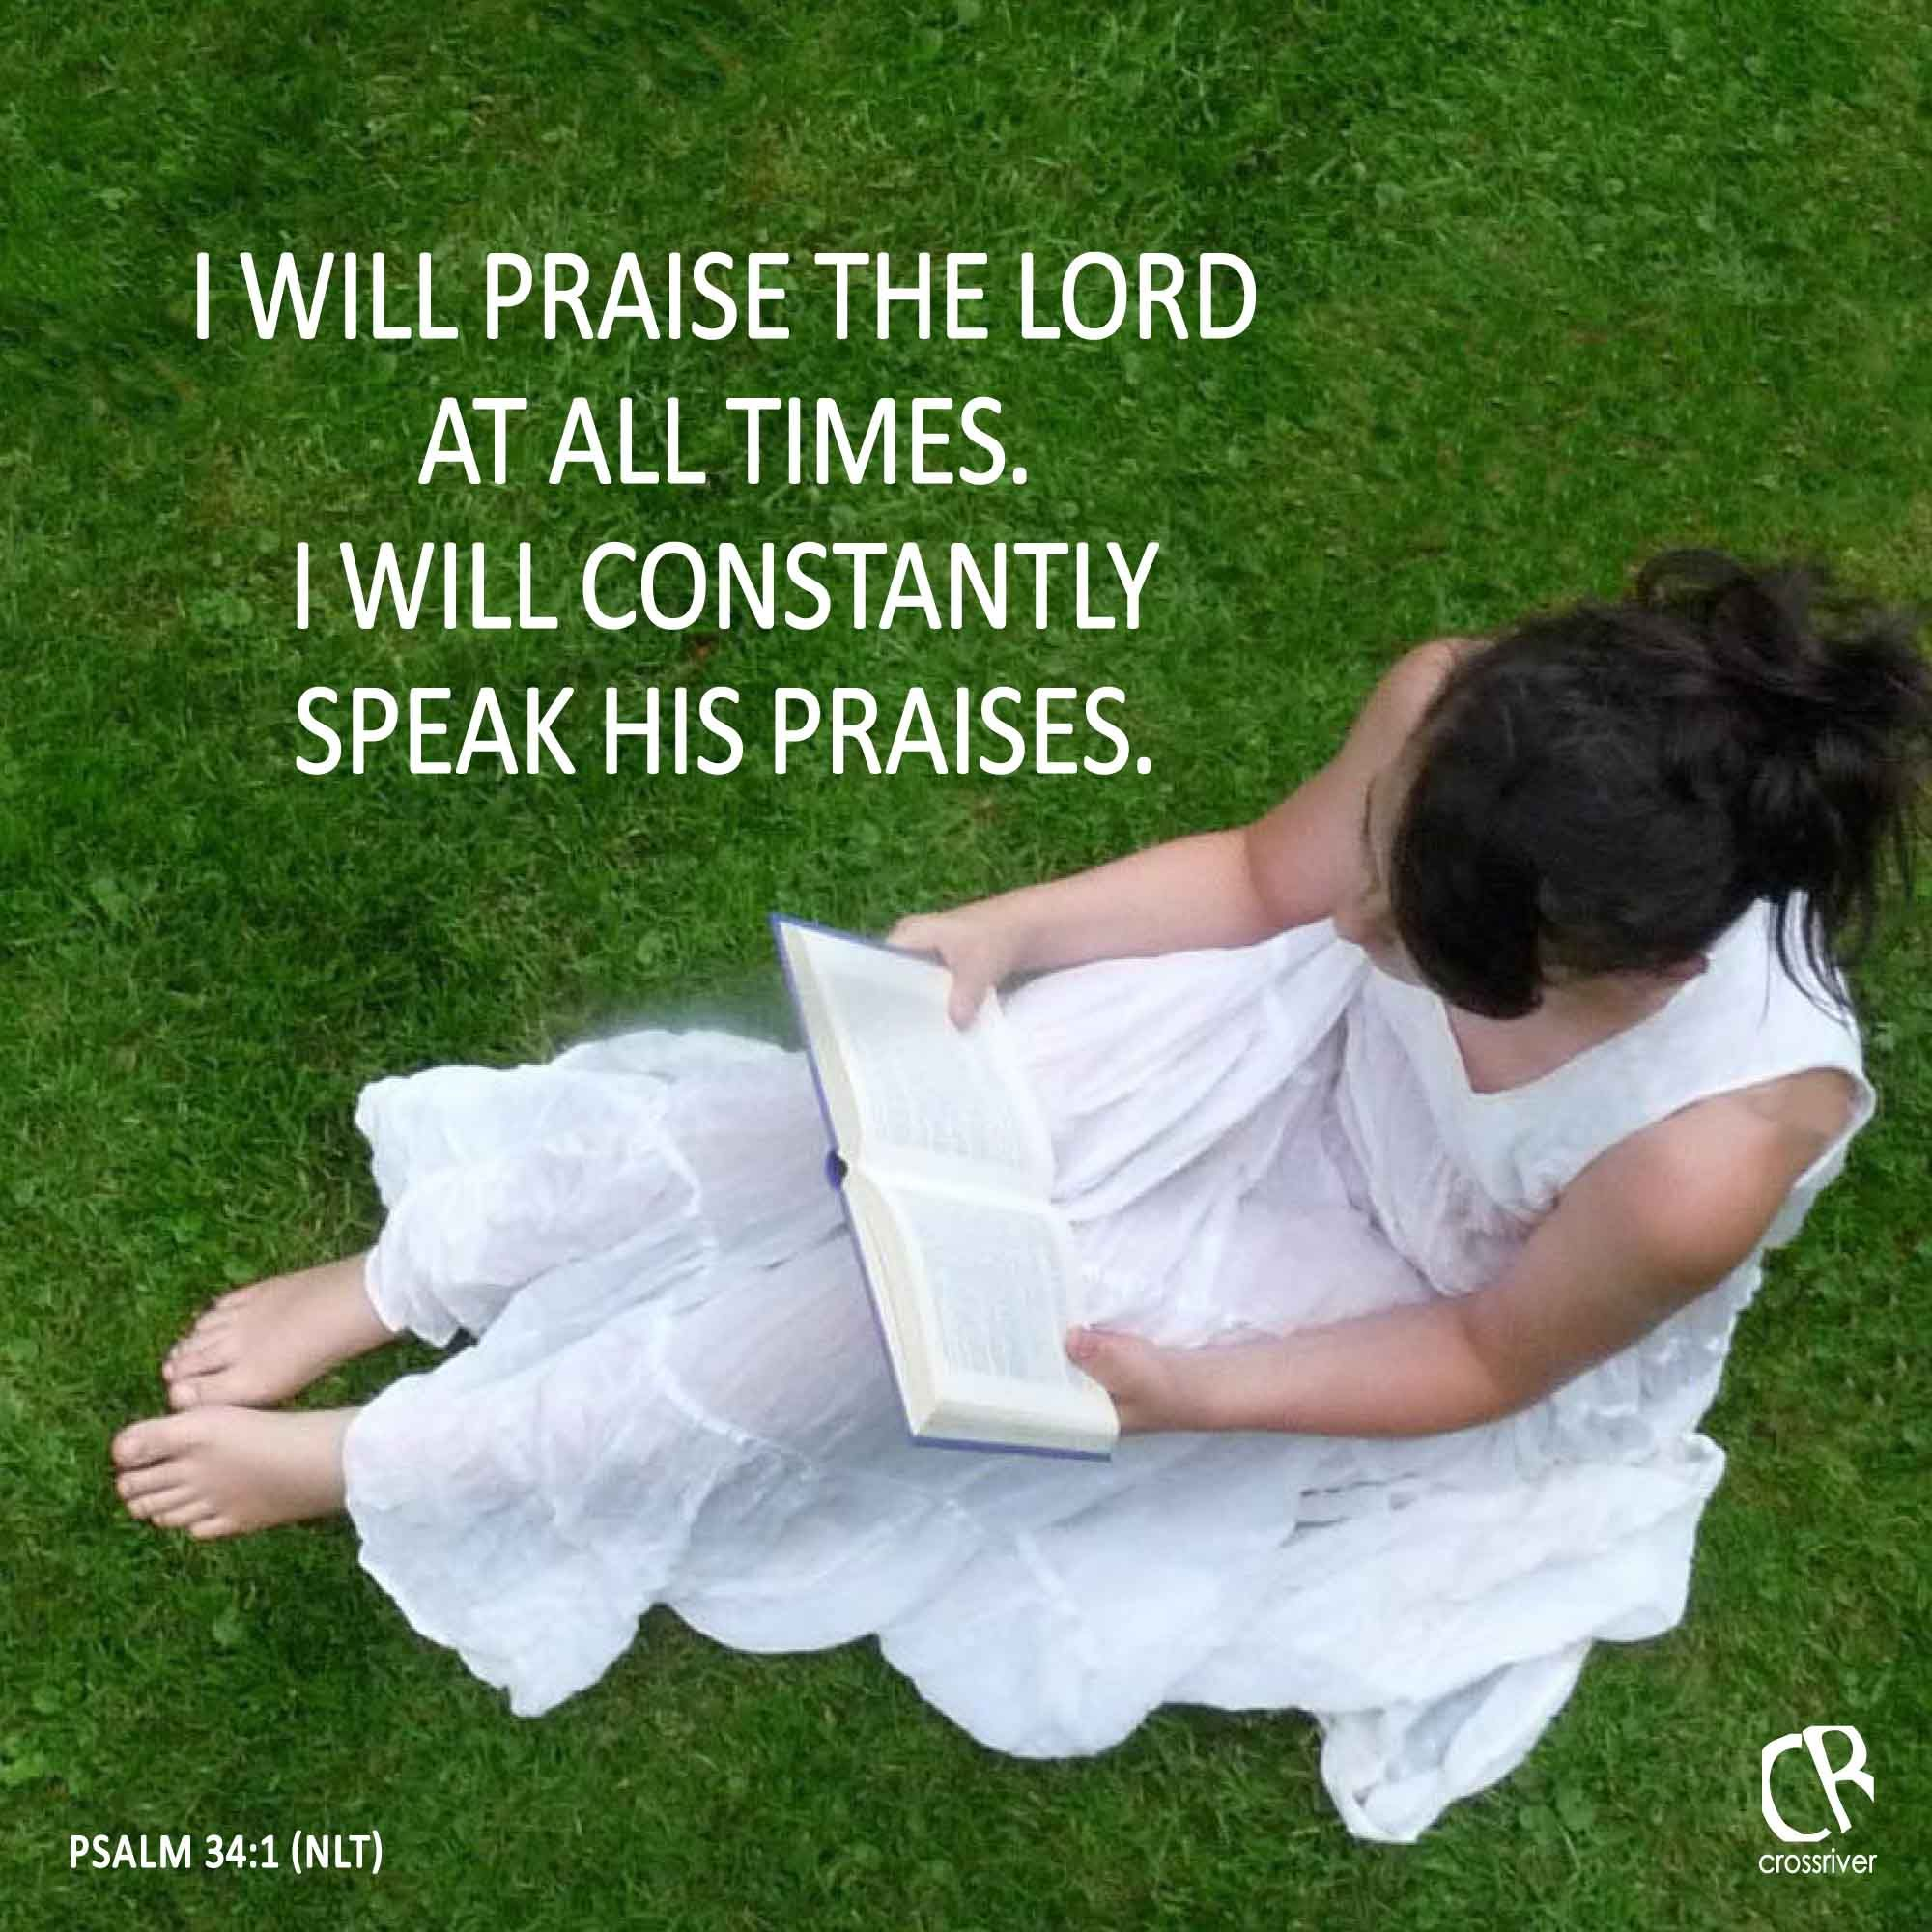 I will praise the Lord at all times. I will constantly speak his praises. - Psalm 34:1 #NLT #Bible